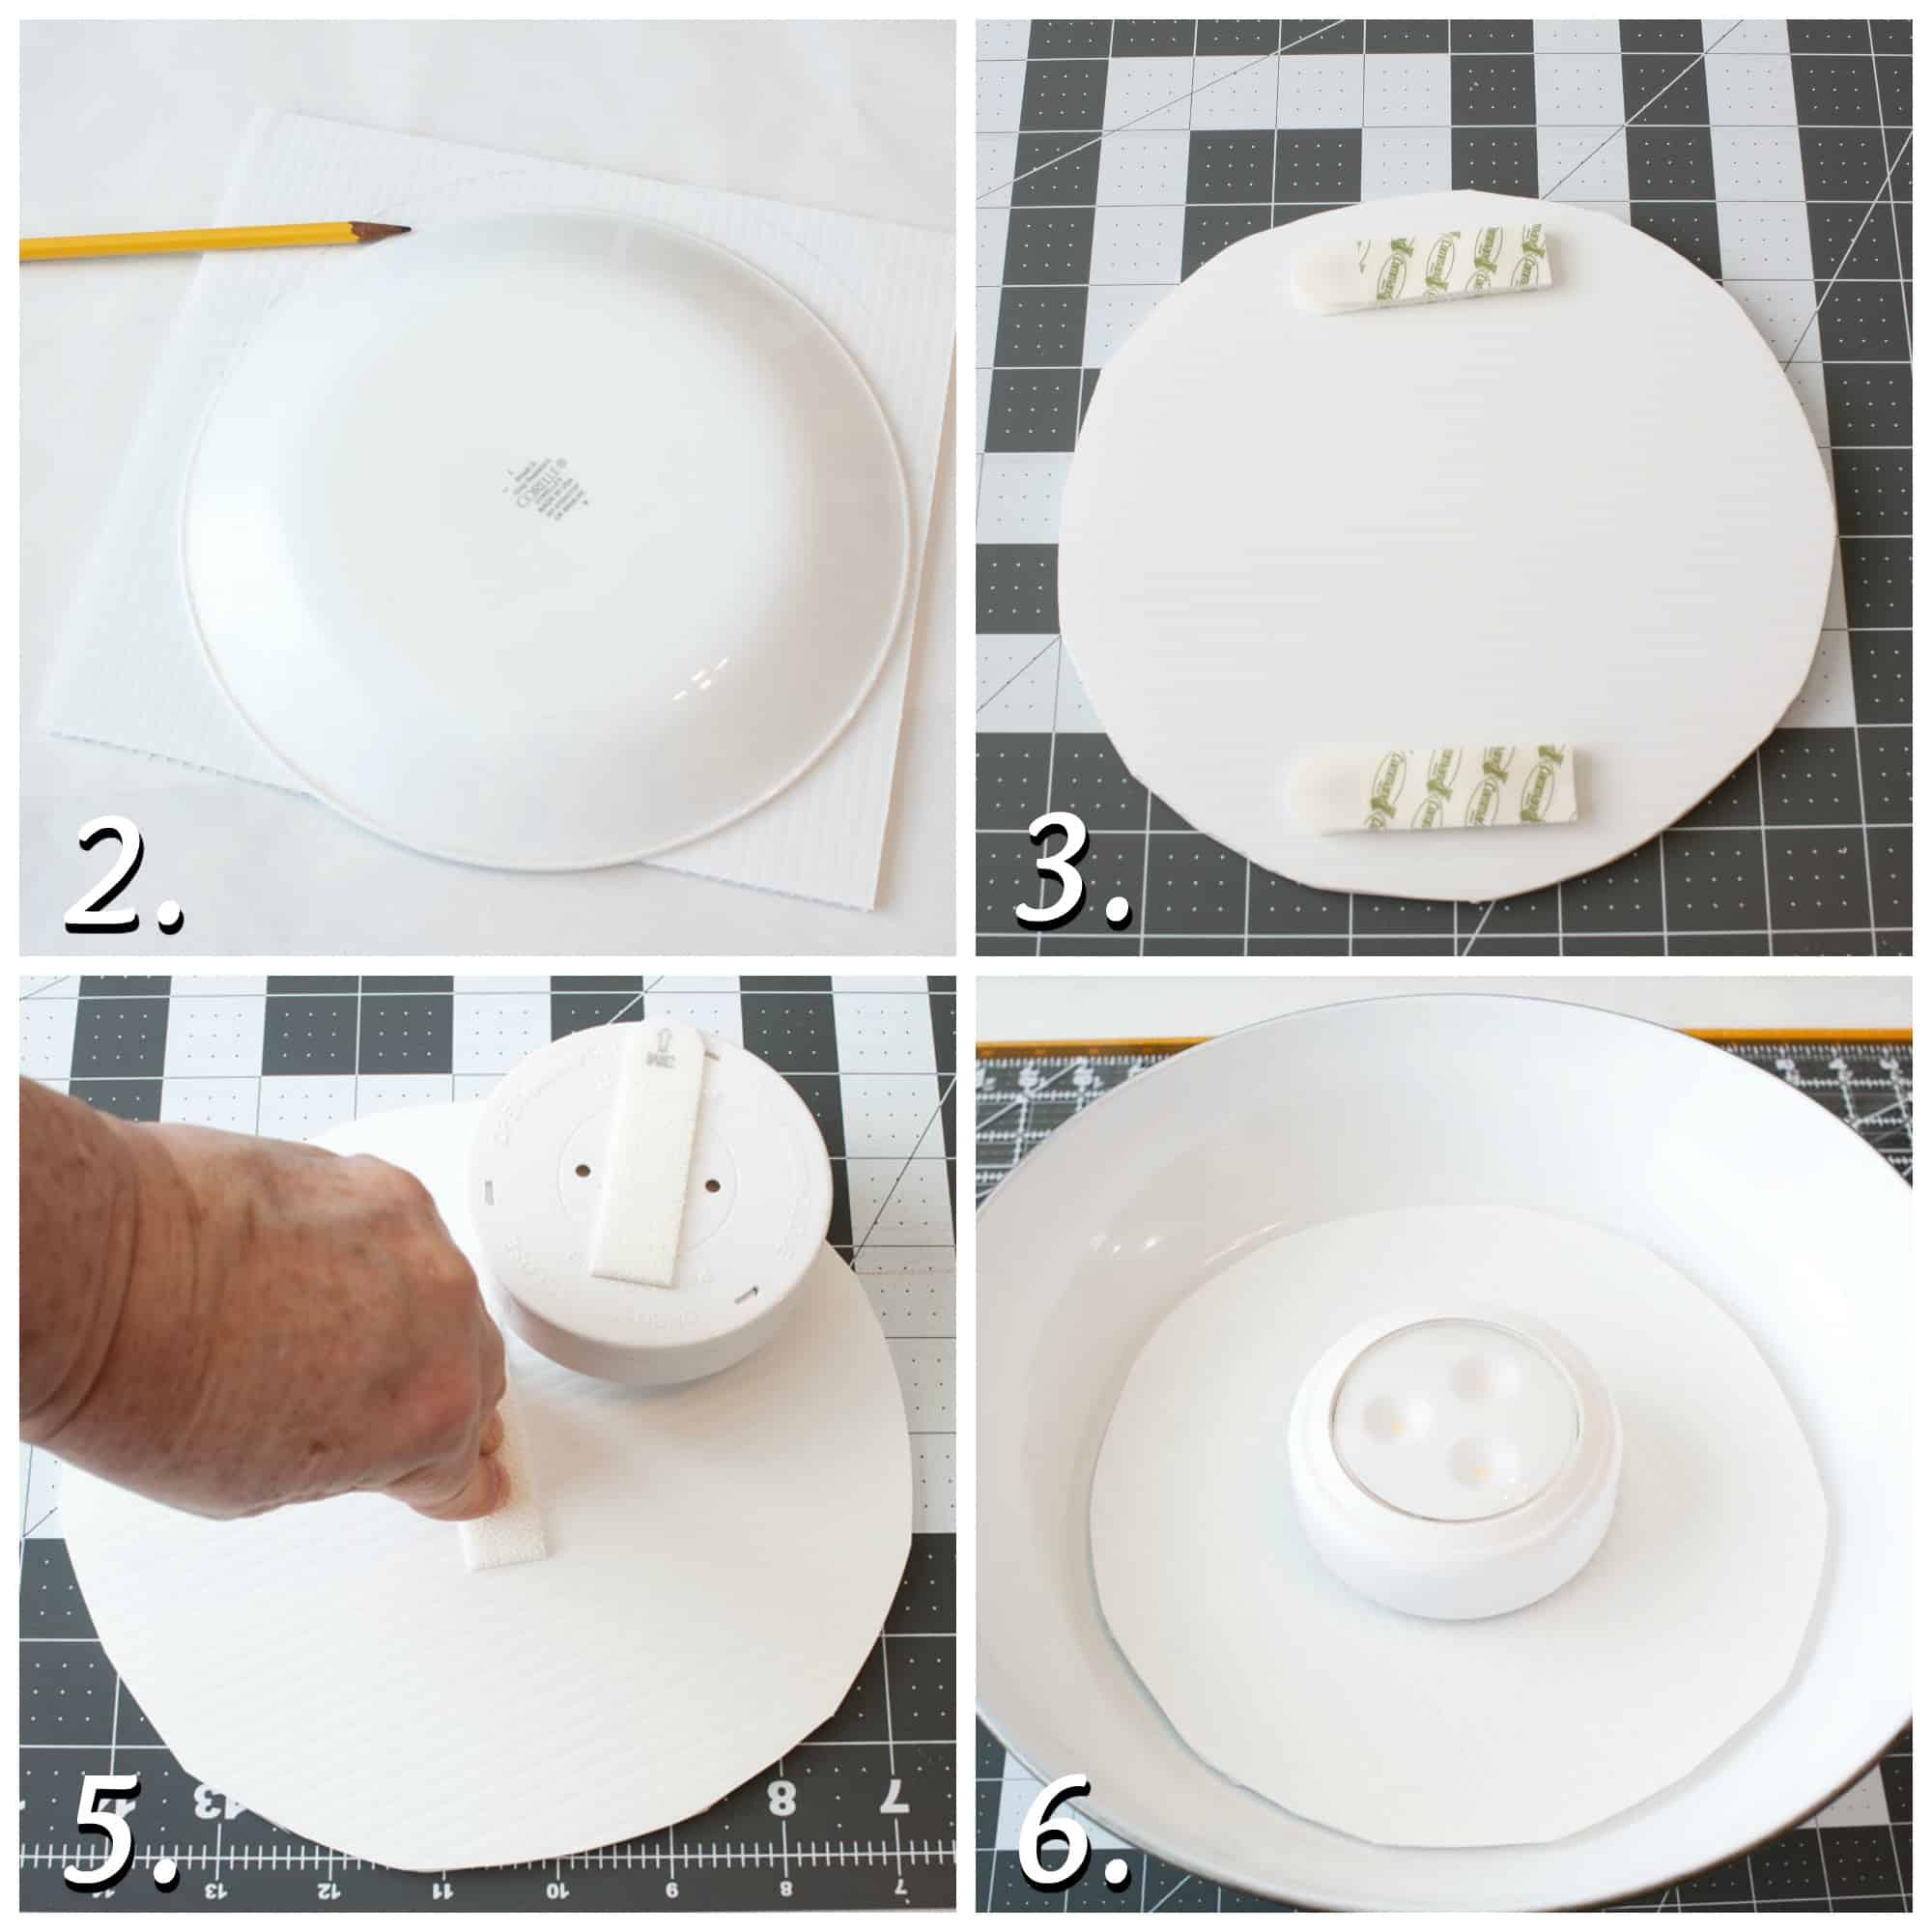 install wireless ceiling light parts of creating a wireless light fixture